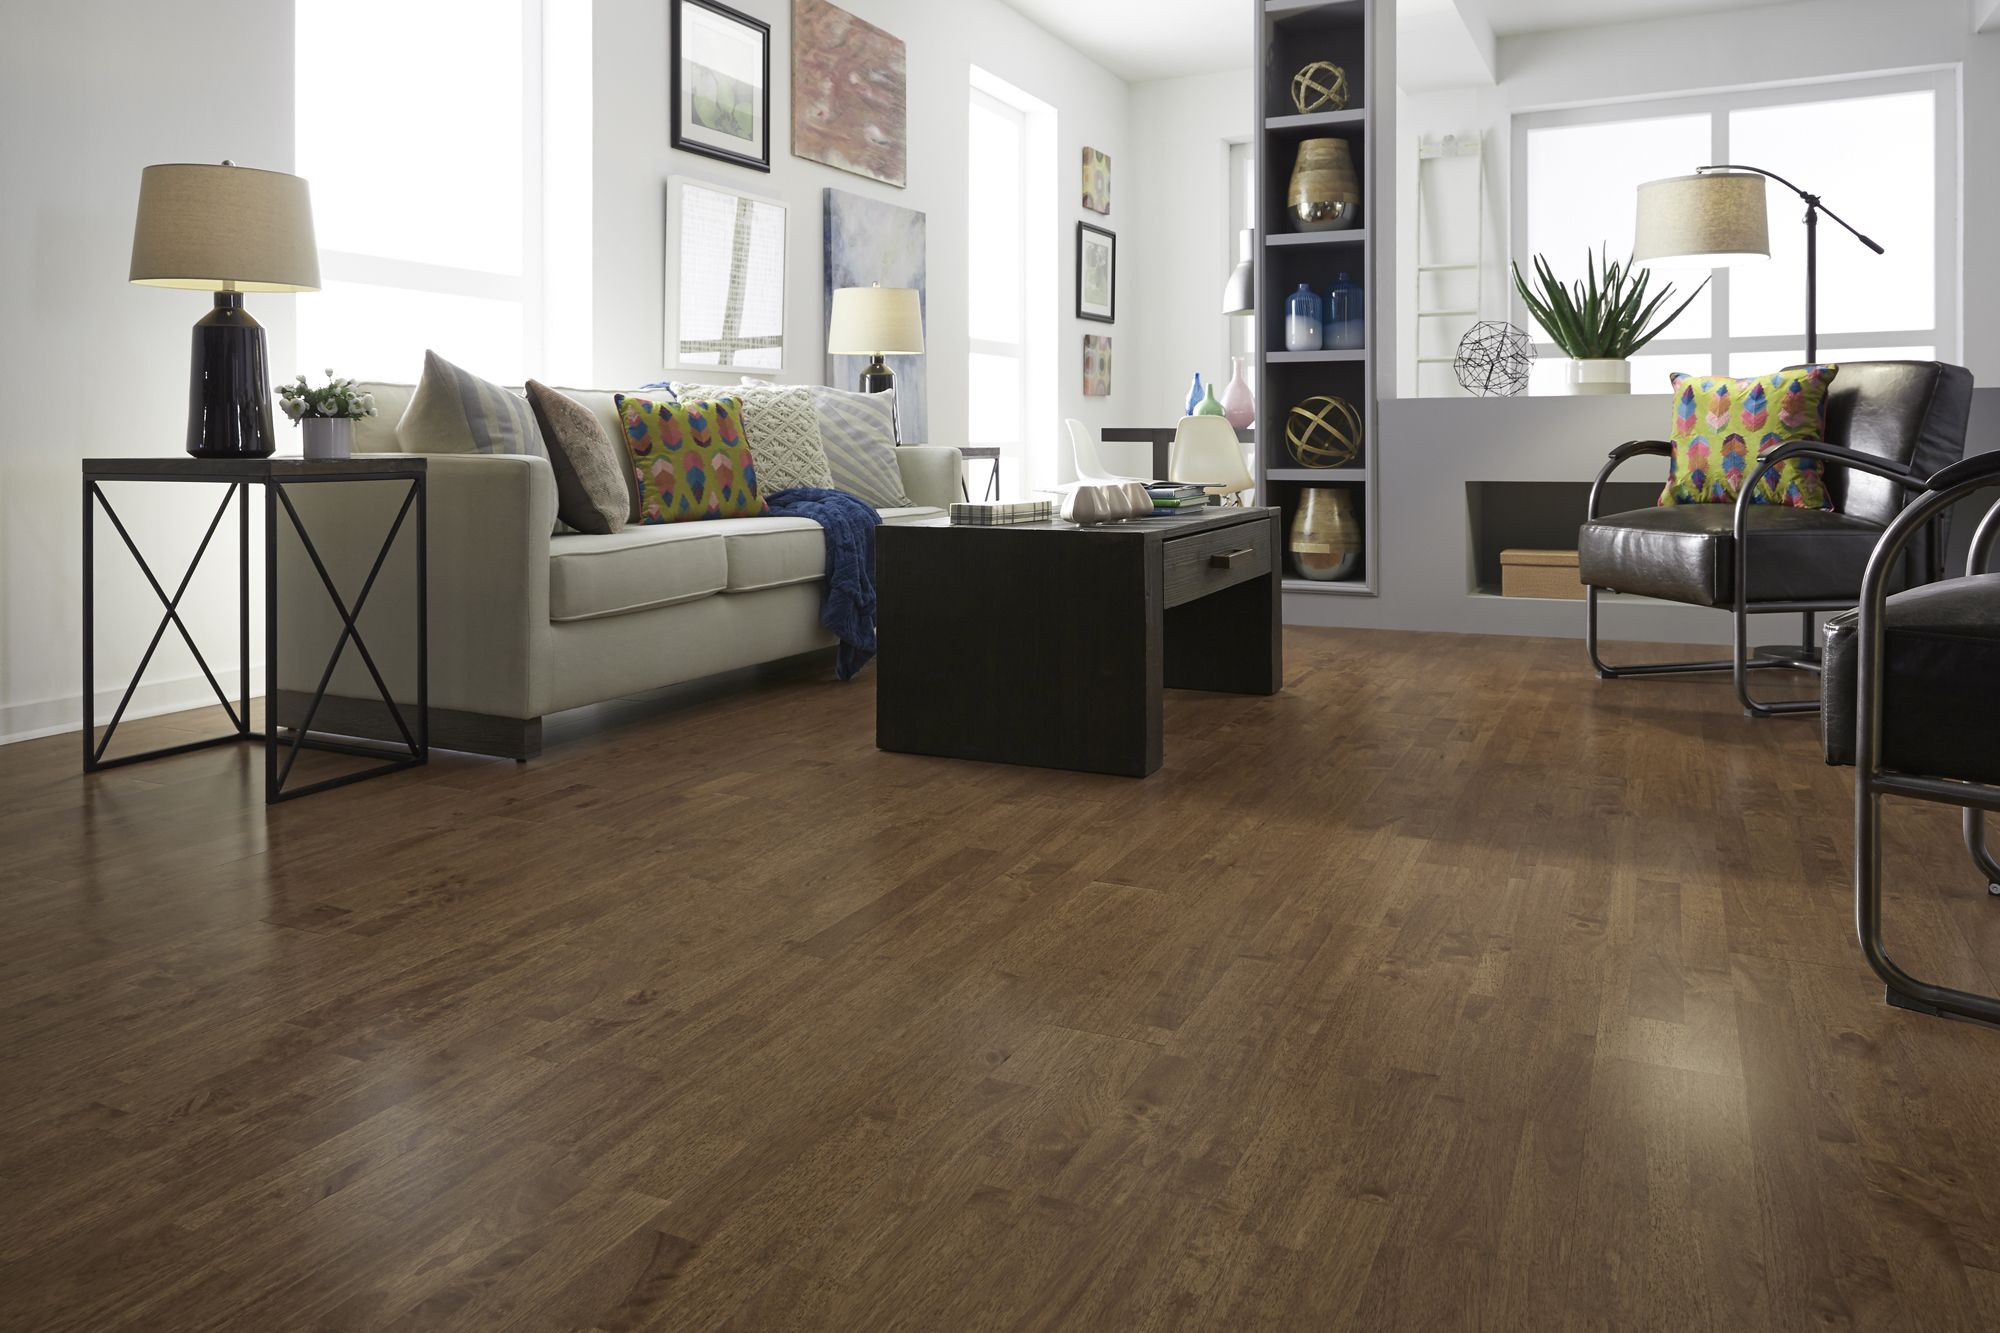 Copper Hevea A Builder S Pride Hardwood Solid Hardwood Floors House Redesign Home